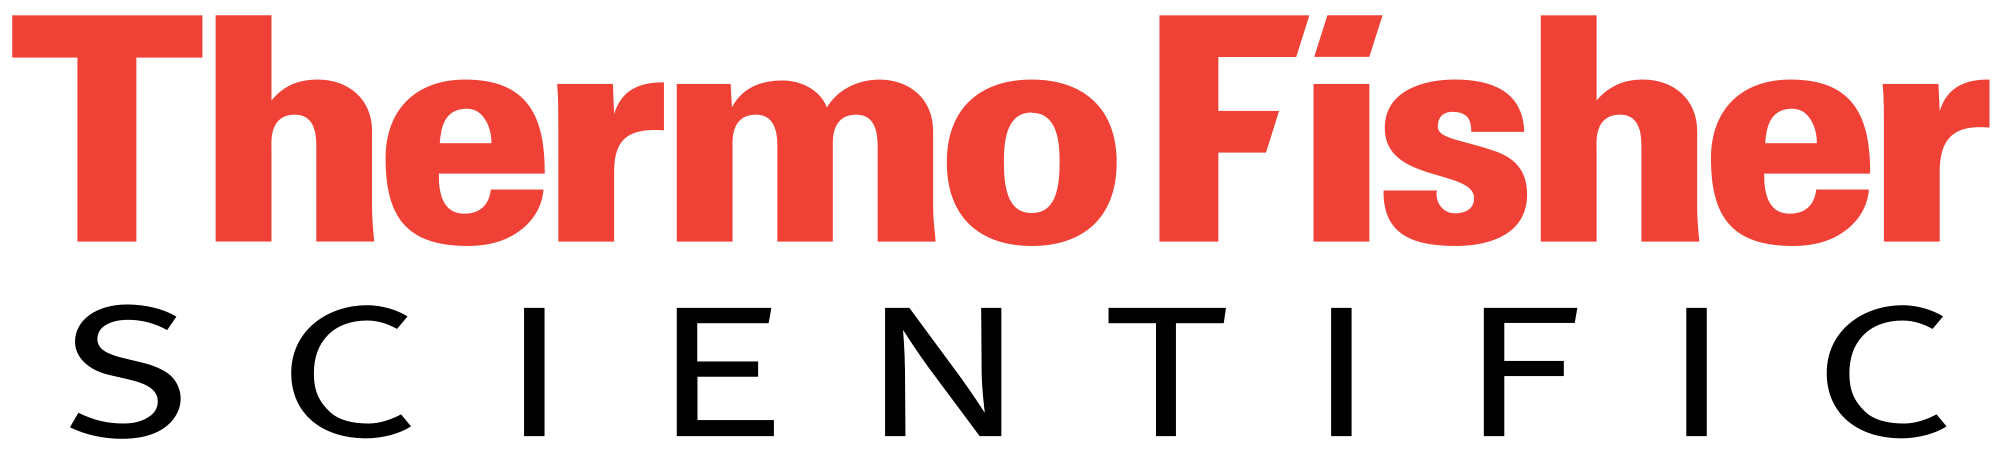 2017-11/sponsor-image-thermo.png